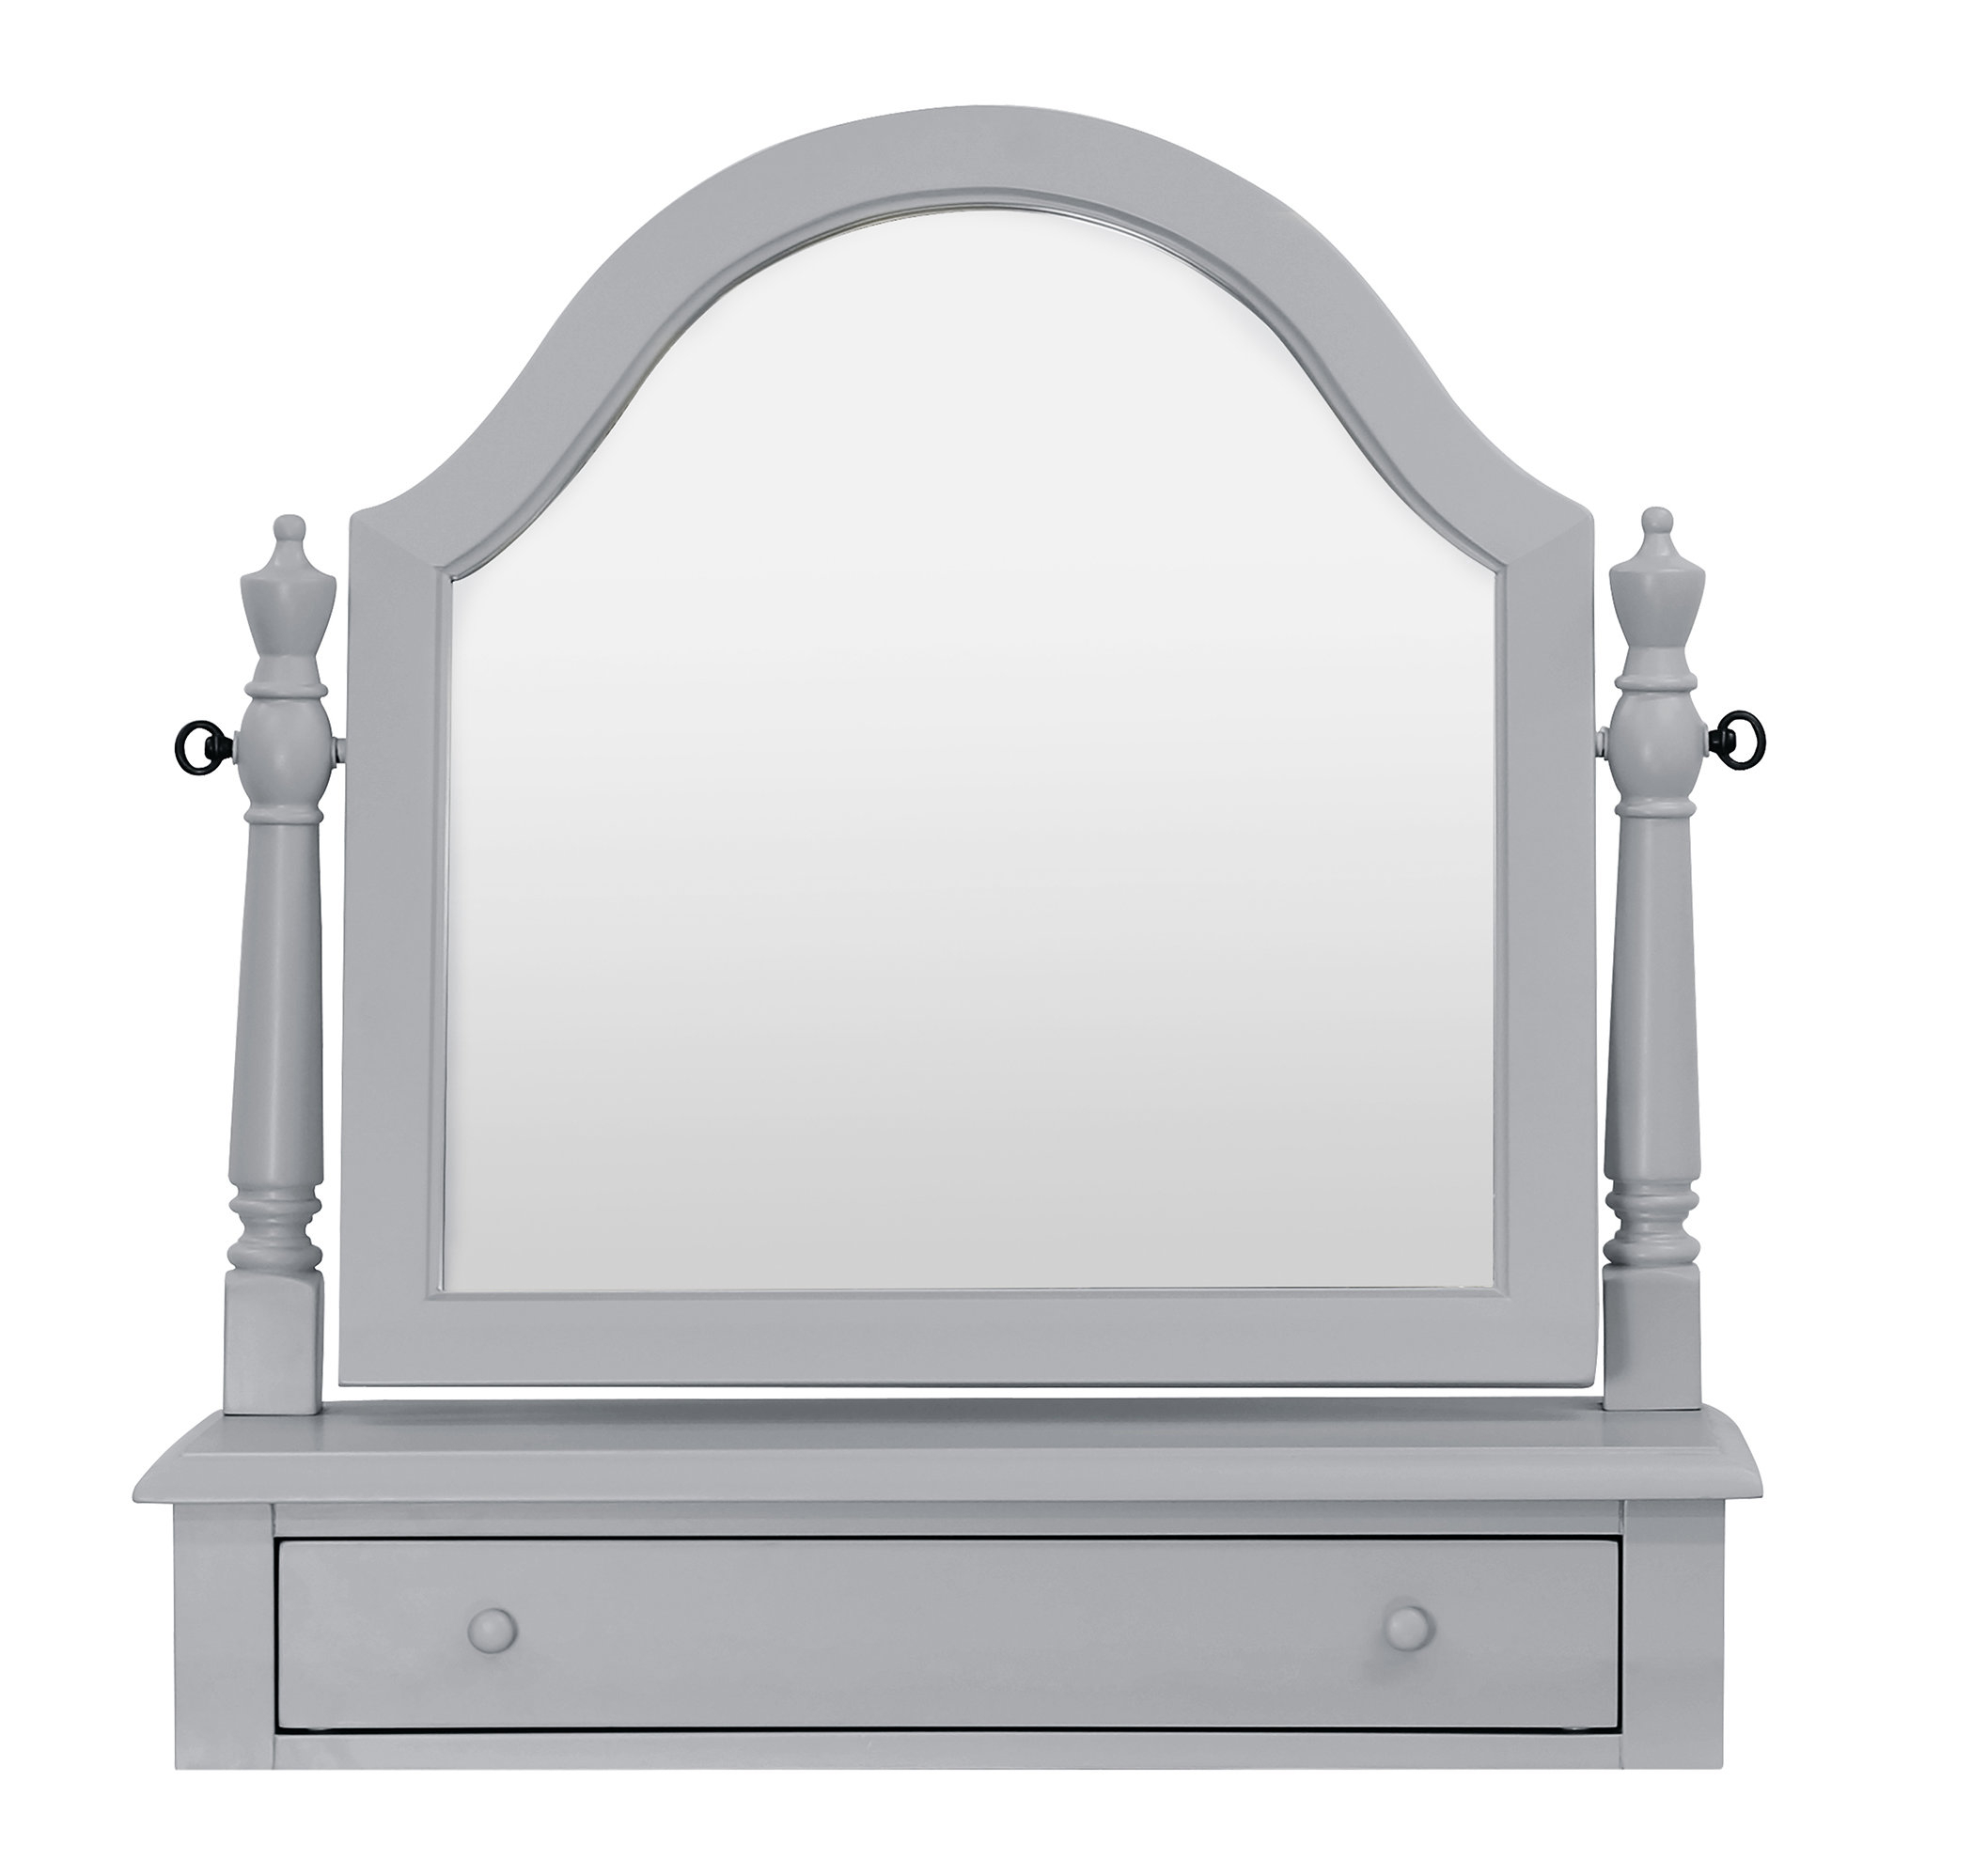 Sullivan Arched Dresser Mirror for Dariel Tall Arched Scalloped Wall Mirrors (Image 23 of 30)